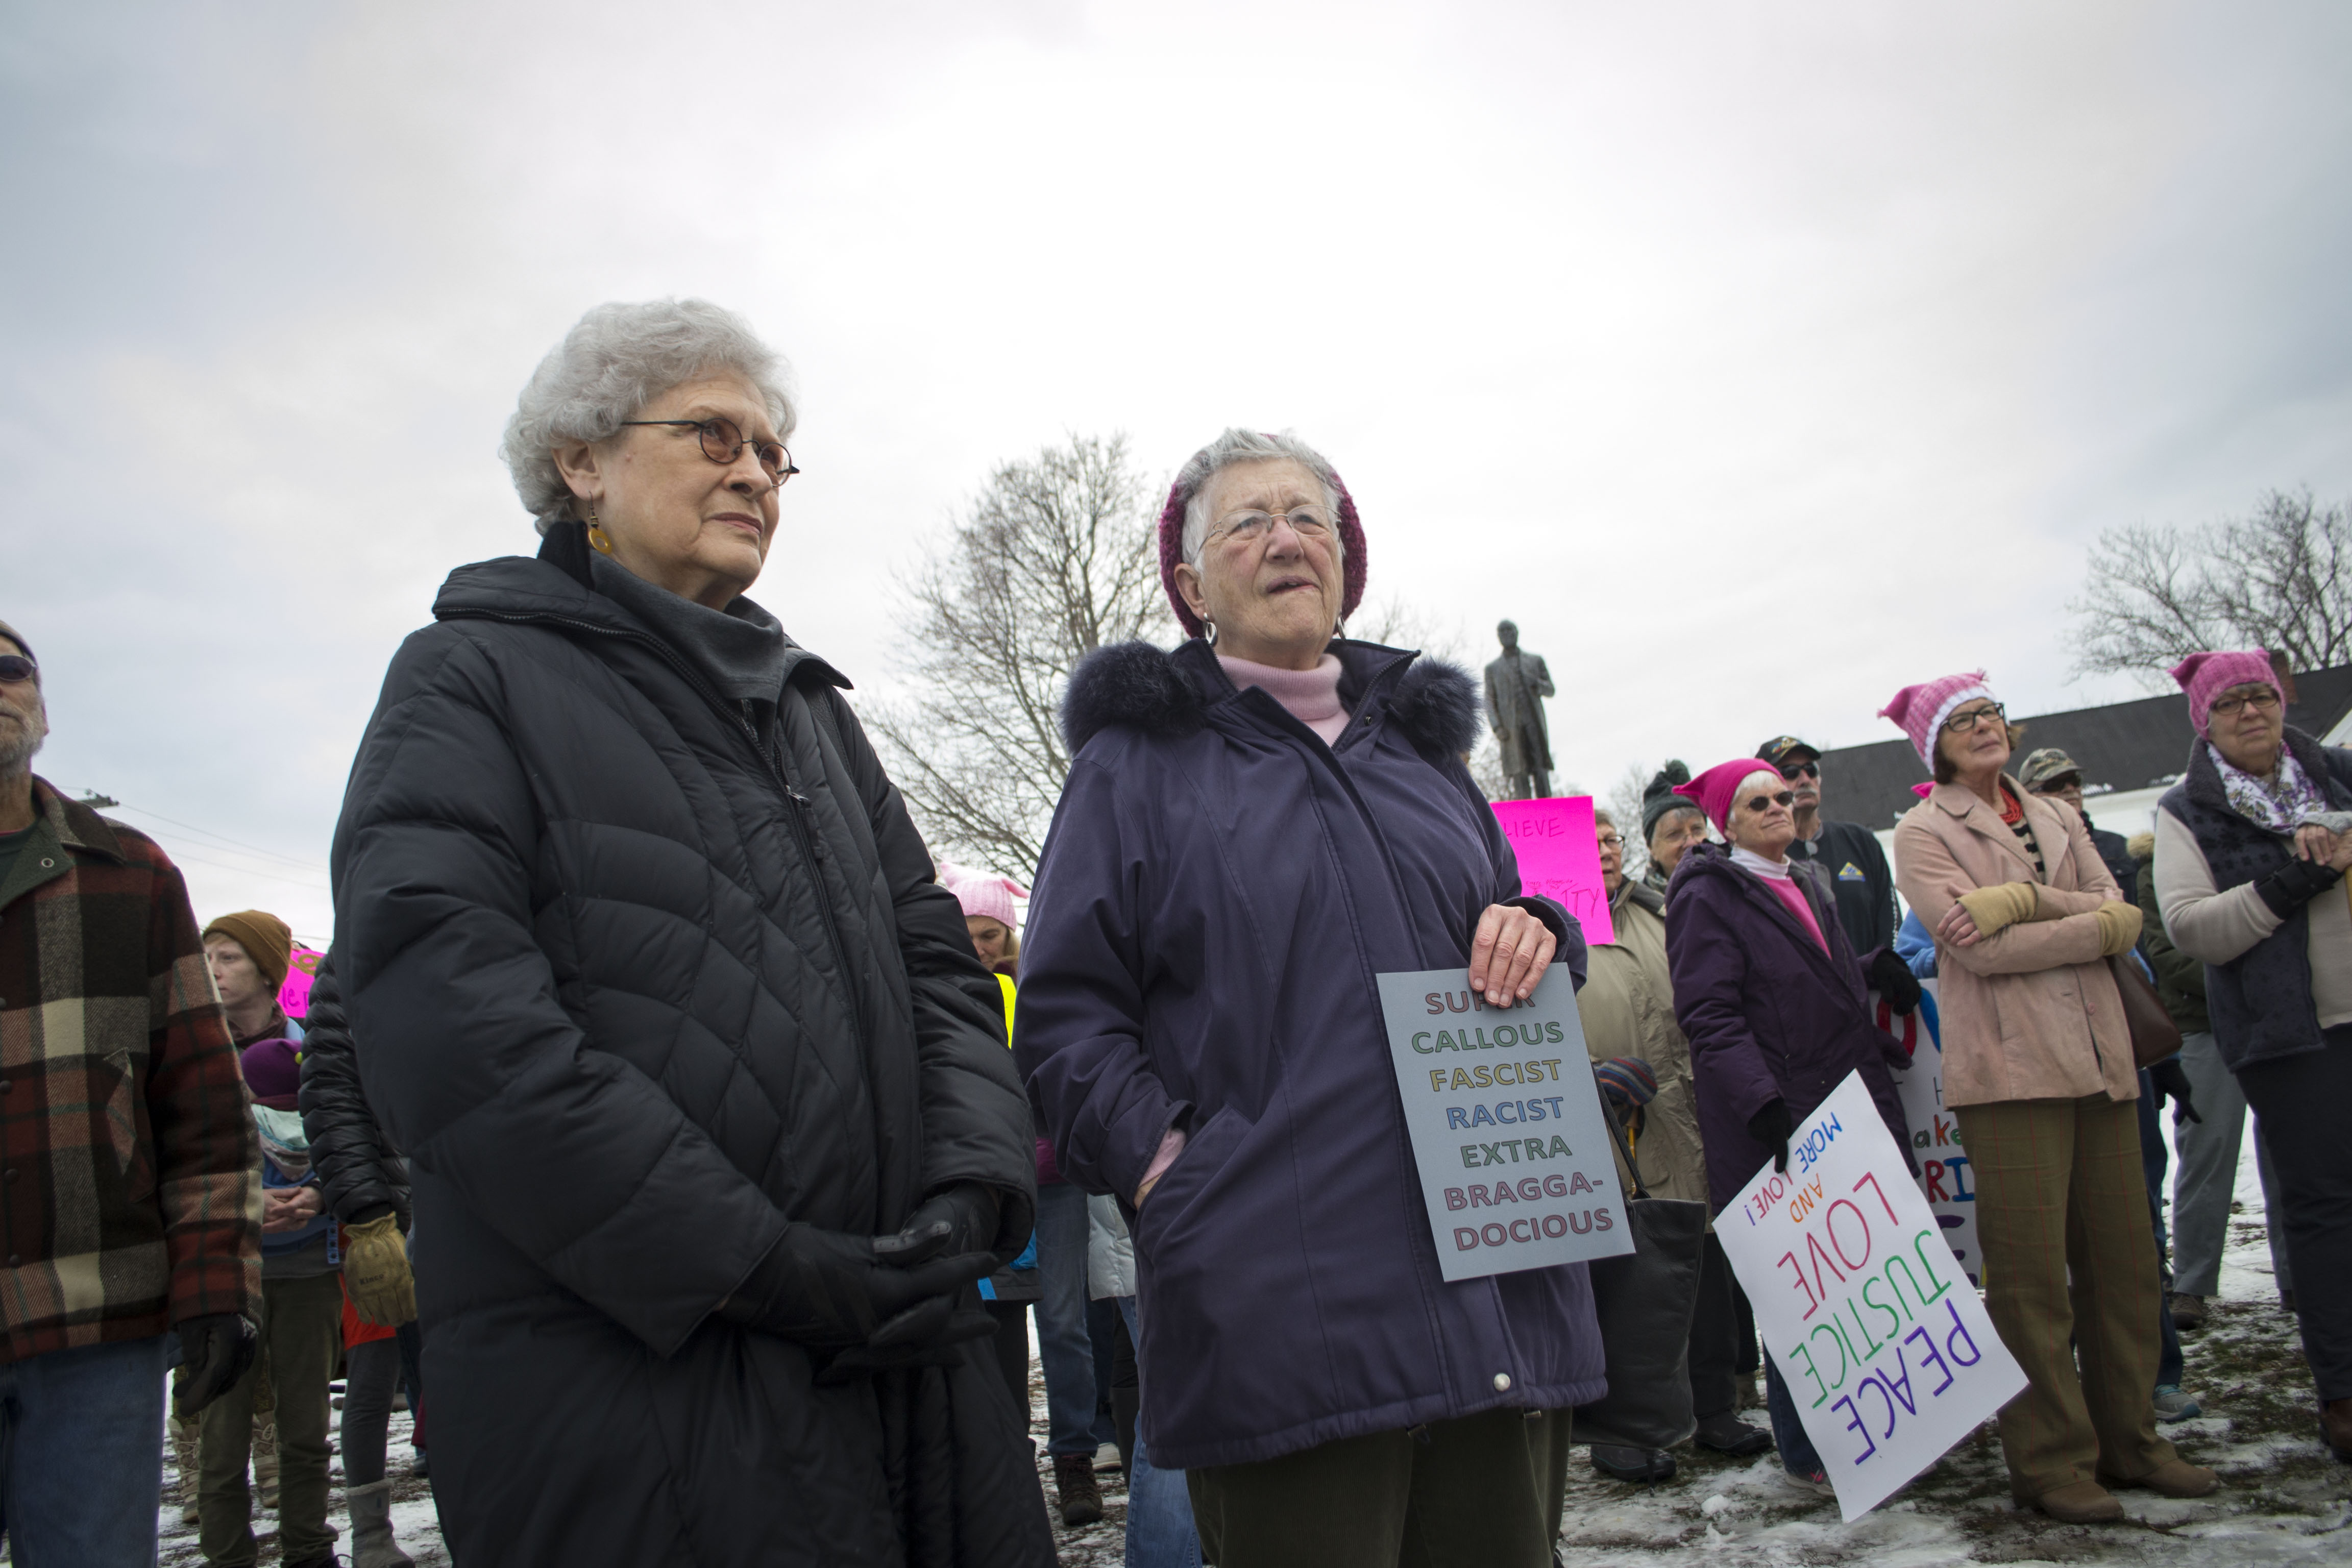 Activists listen to speeches in Central park before marching down Main Street in Sanford, as part of the Women's March on Maine on Saturday. ALAN BENNETT/Journal Tribune.